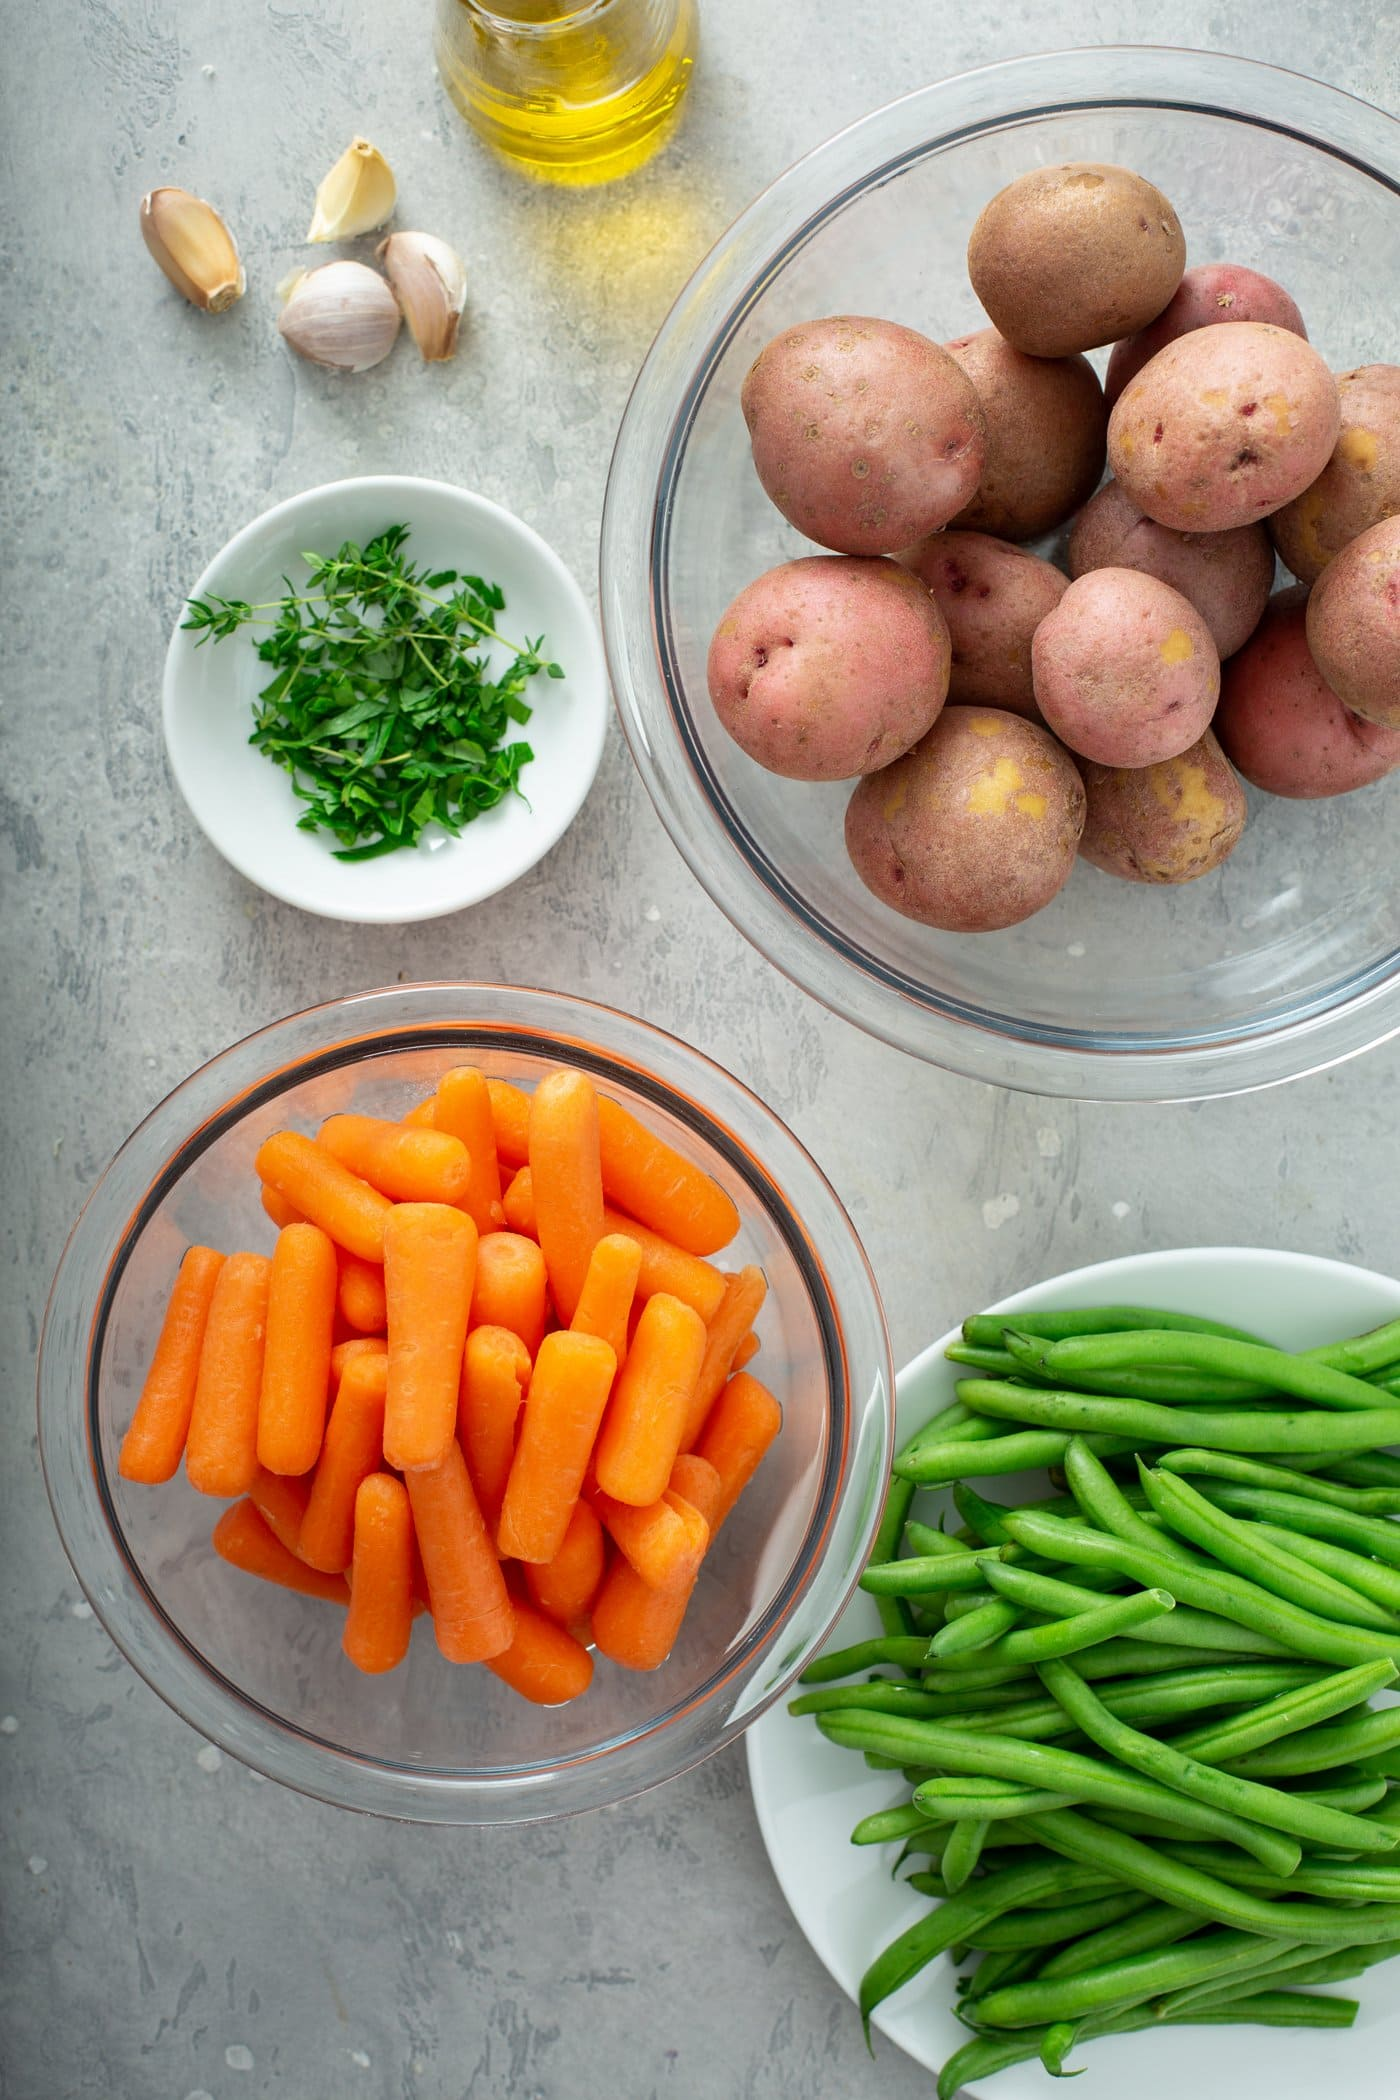 Bowls containing red potatoes, baby carrots, fresh green beans, and fresh green herbs.